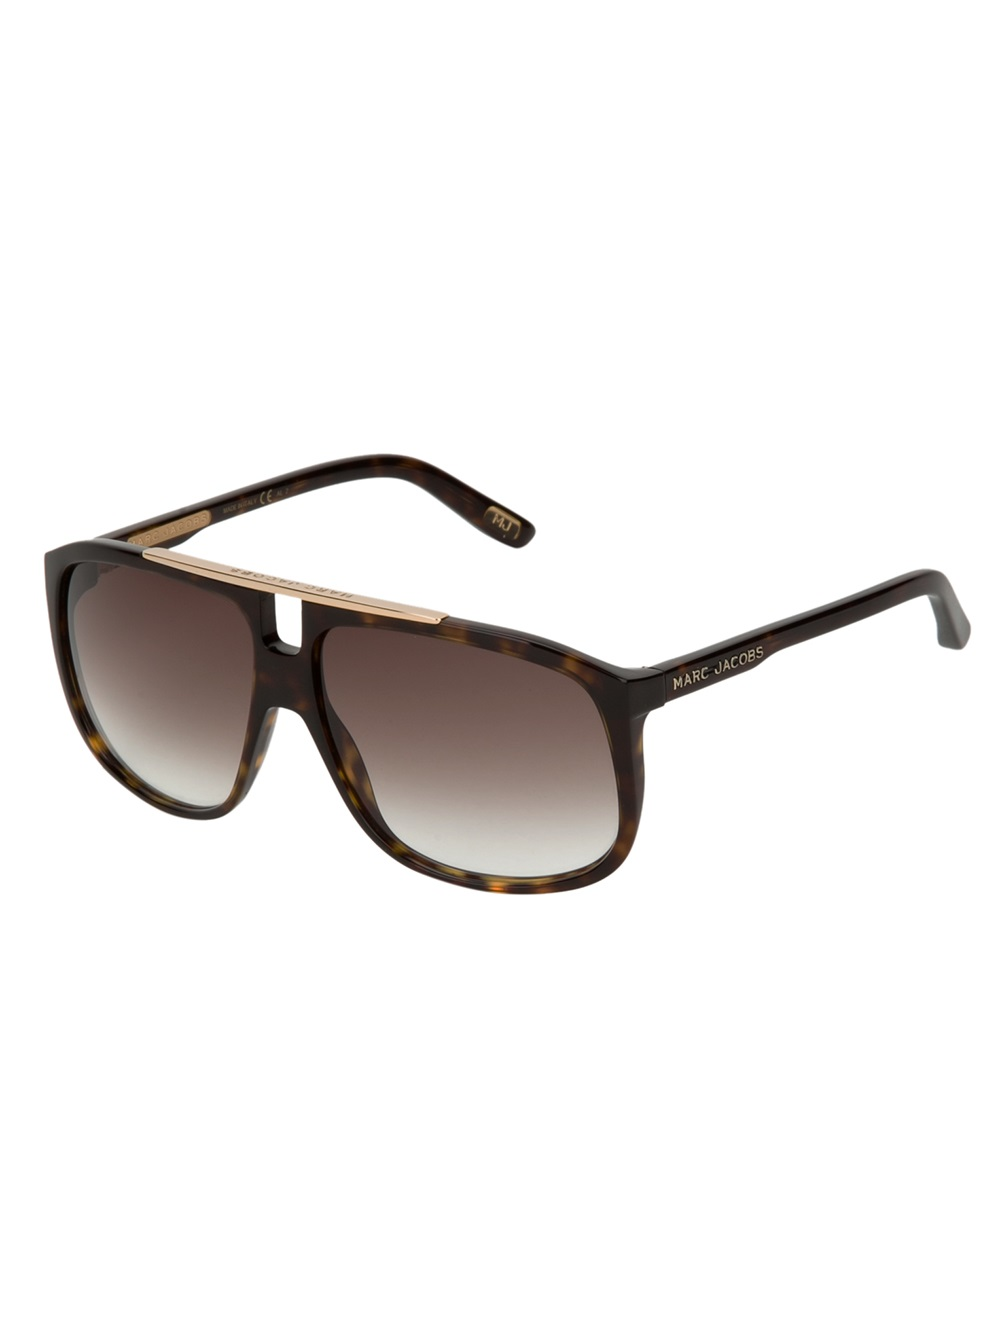 Marc Jacobs Sunglasses Men  marc jacobs mens sunglasses 2016